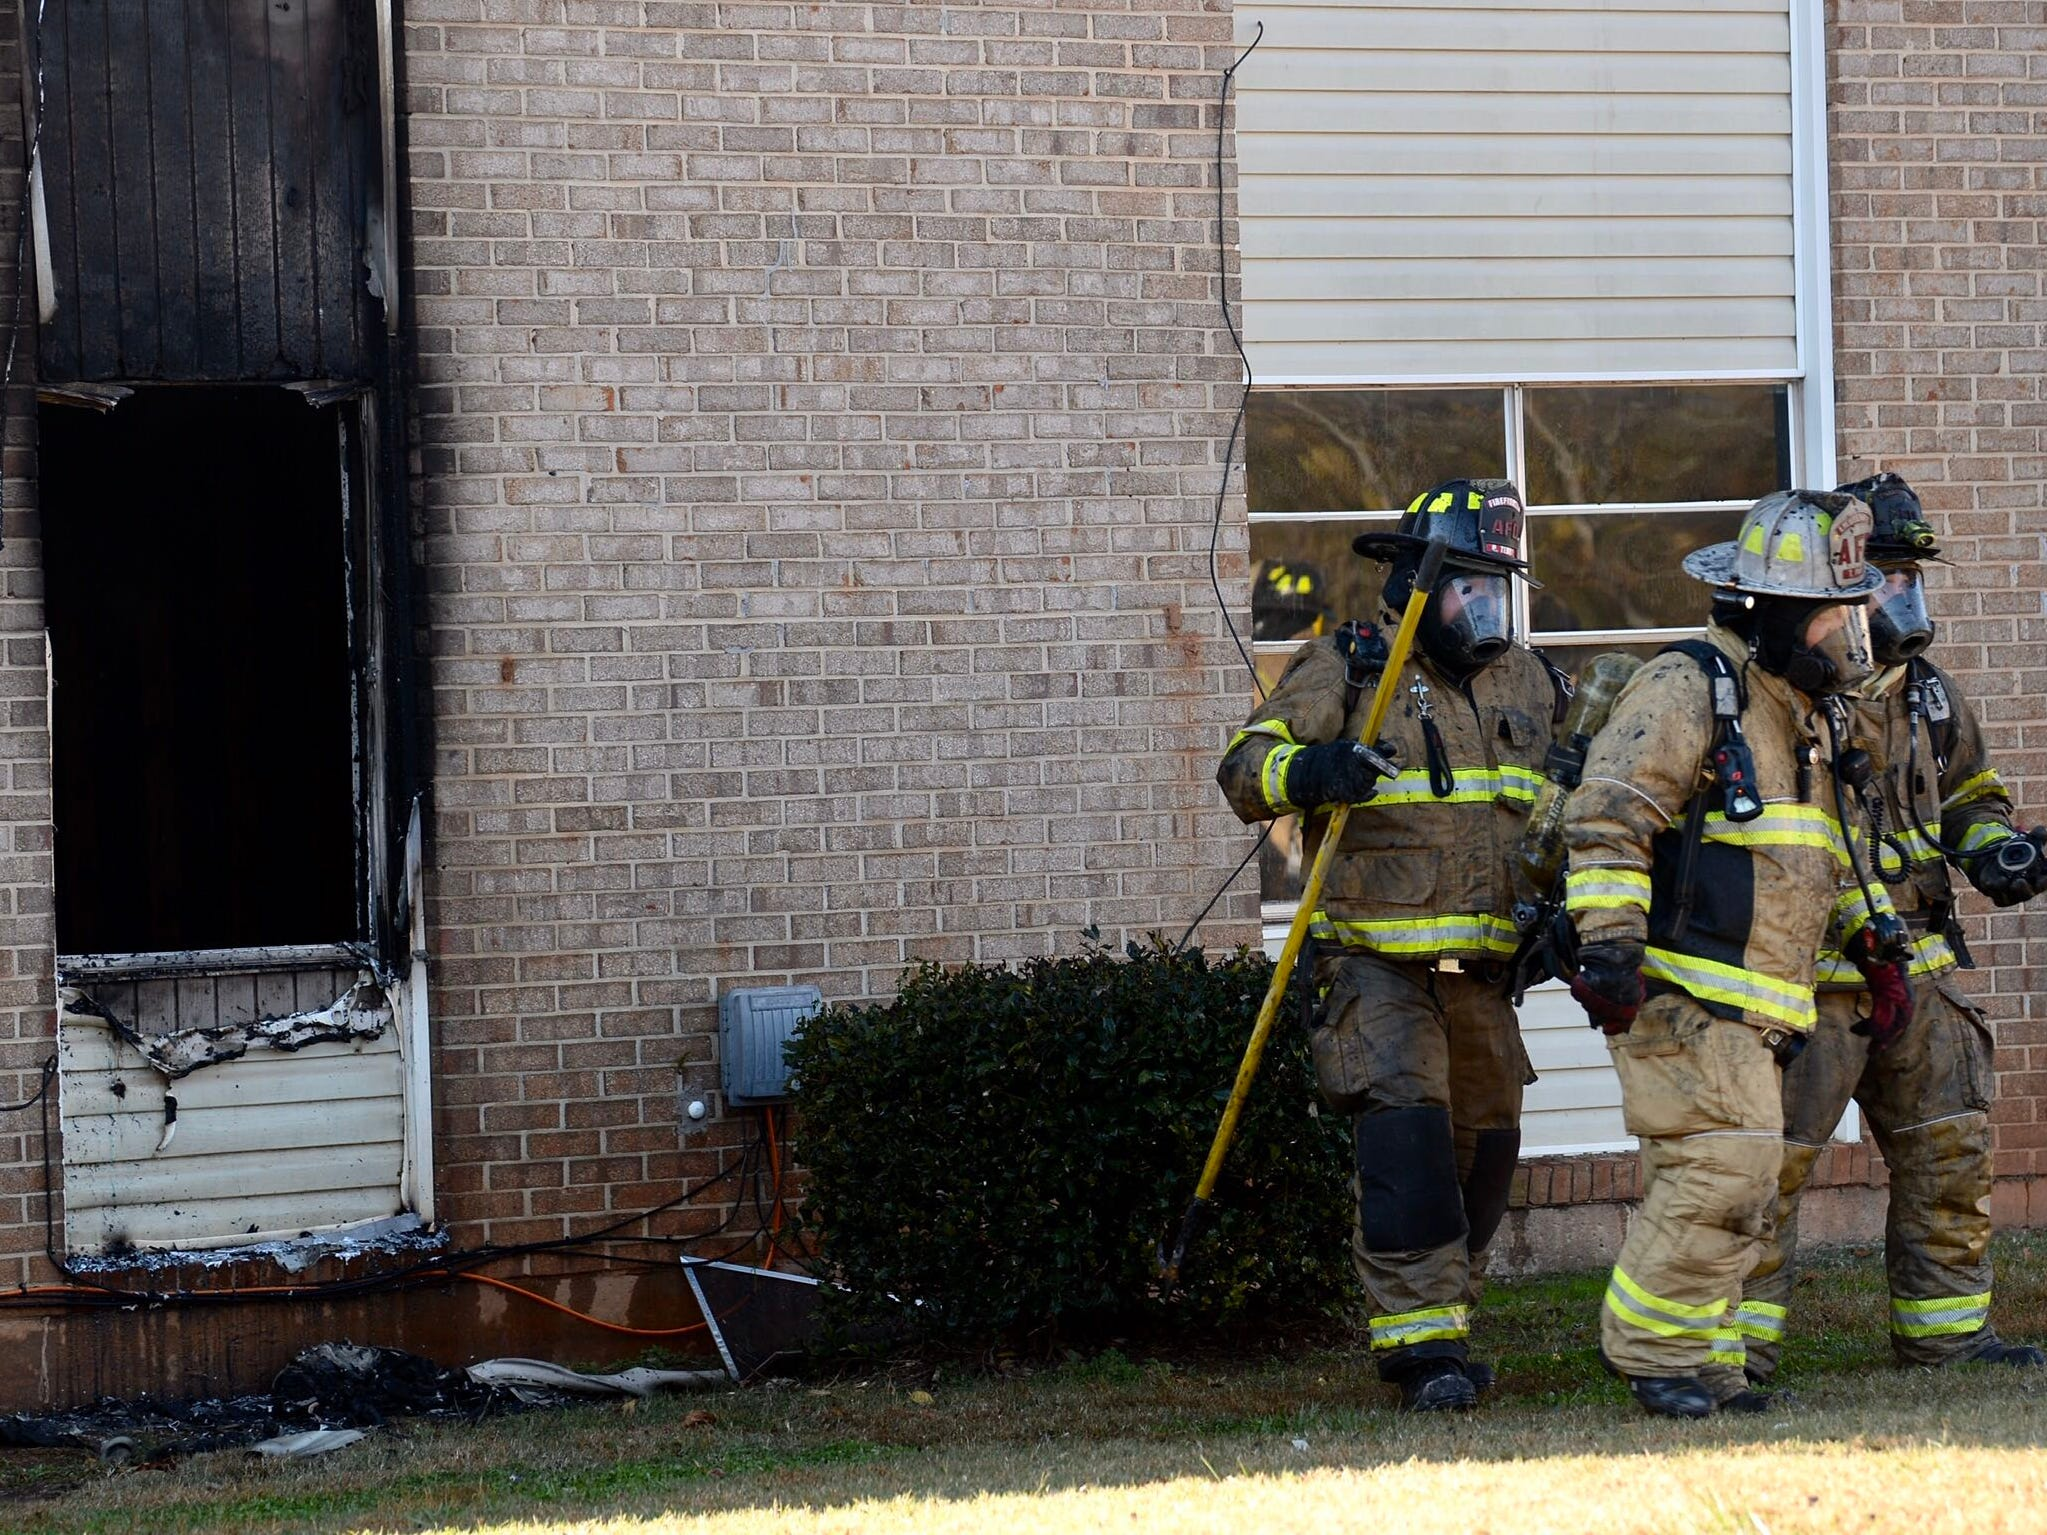 Anderson City firefighters are responding to a report of a fire at an Anderson apartment complex.